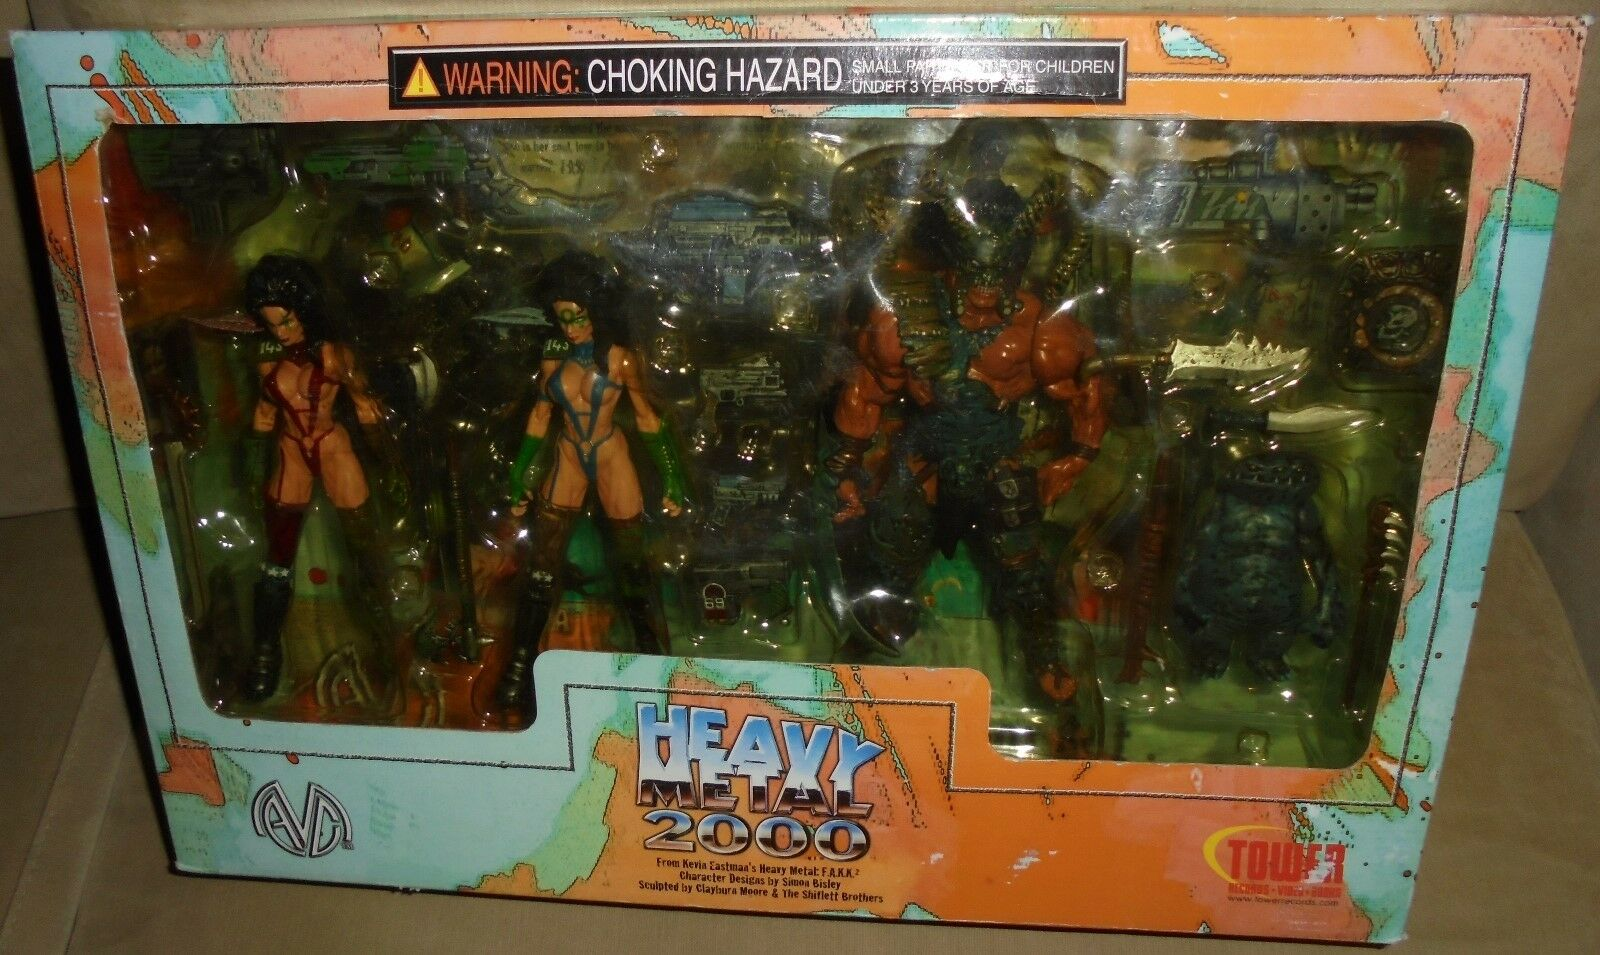 Heavy metal 2000 exklusive 4 posable actionfigur box - moore aktion 2000